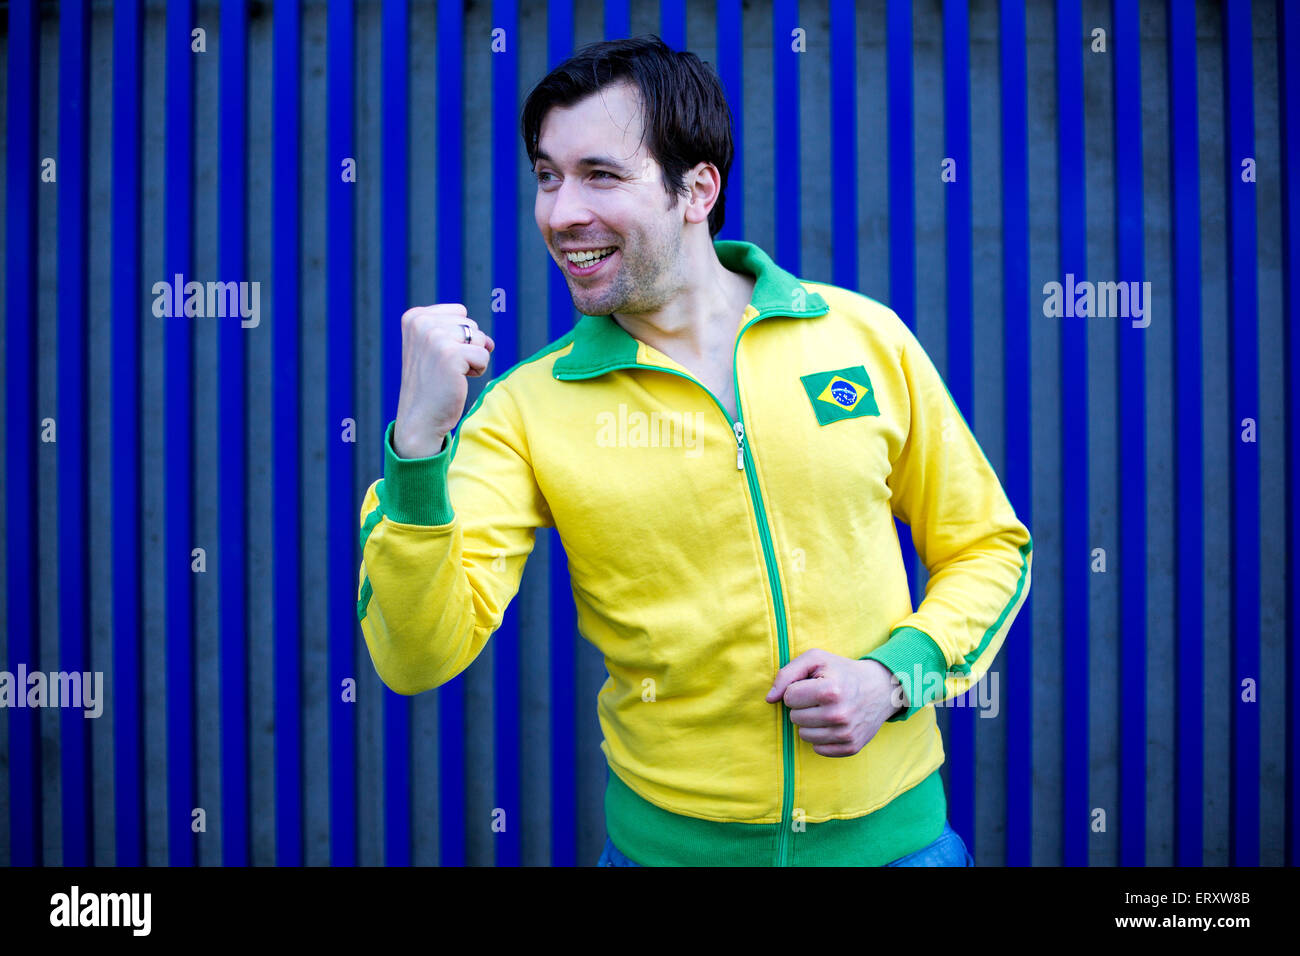 man in yellow sports trikot makes a fist for victory - Stock Image